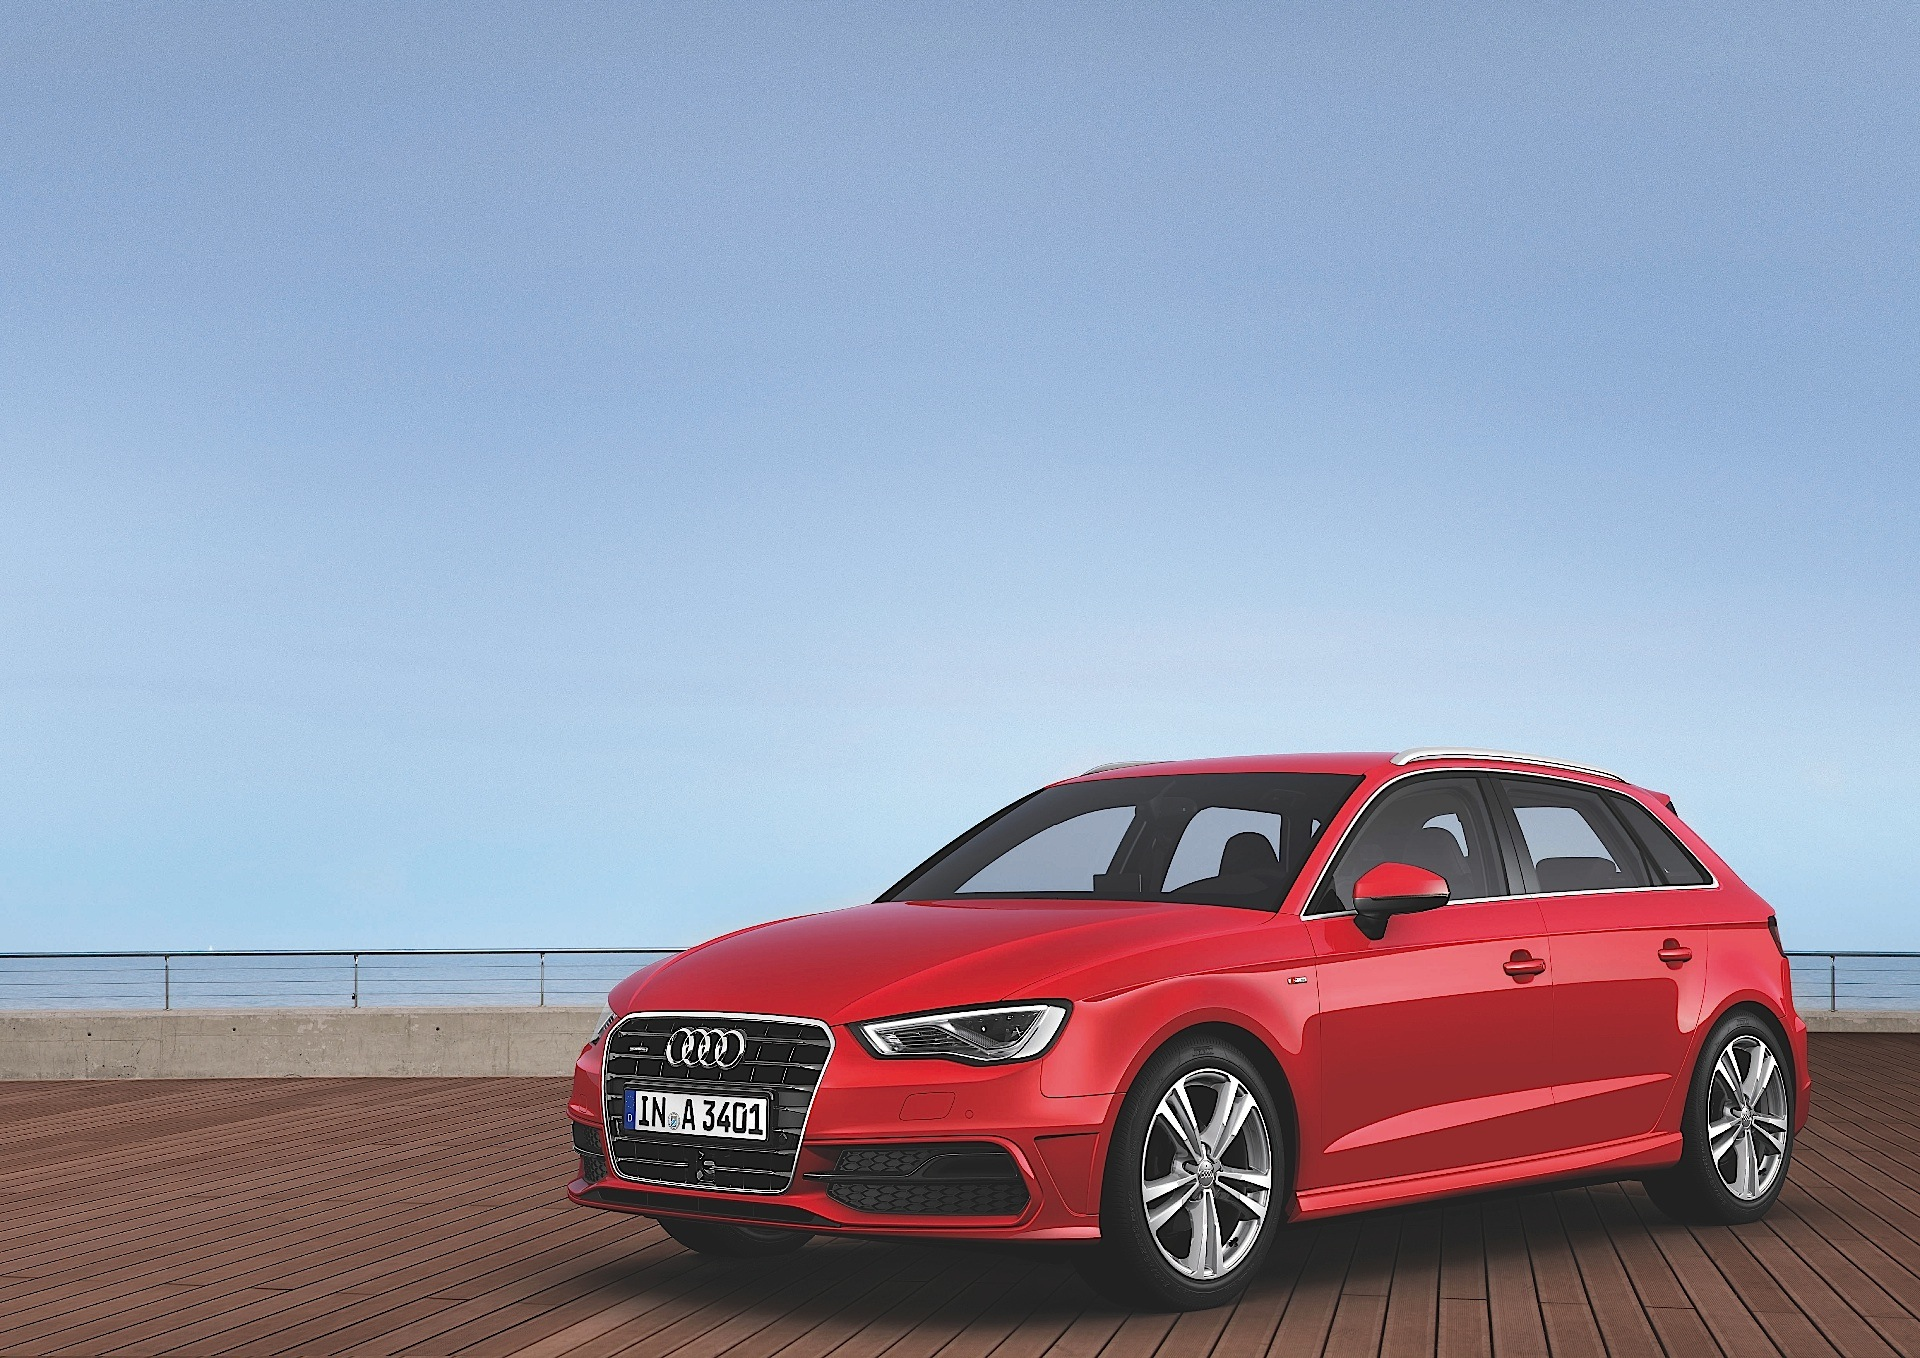 audi a3 sportback 5 doors specs 2012 2013 2014 2015 2016 2017 2018 autoevolution. Black Bedroom Furniture Sets. Home Design Ideas